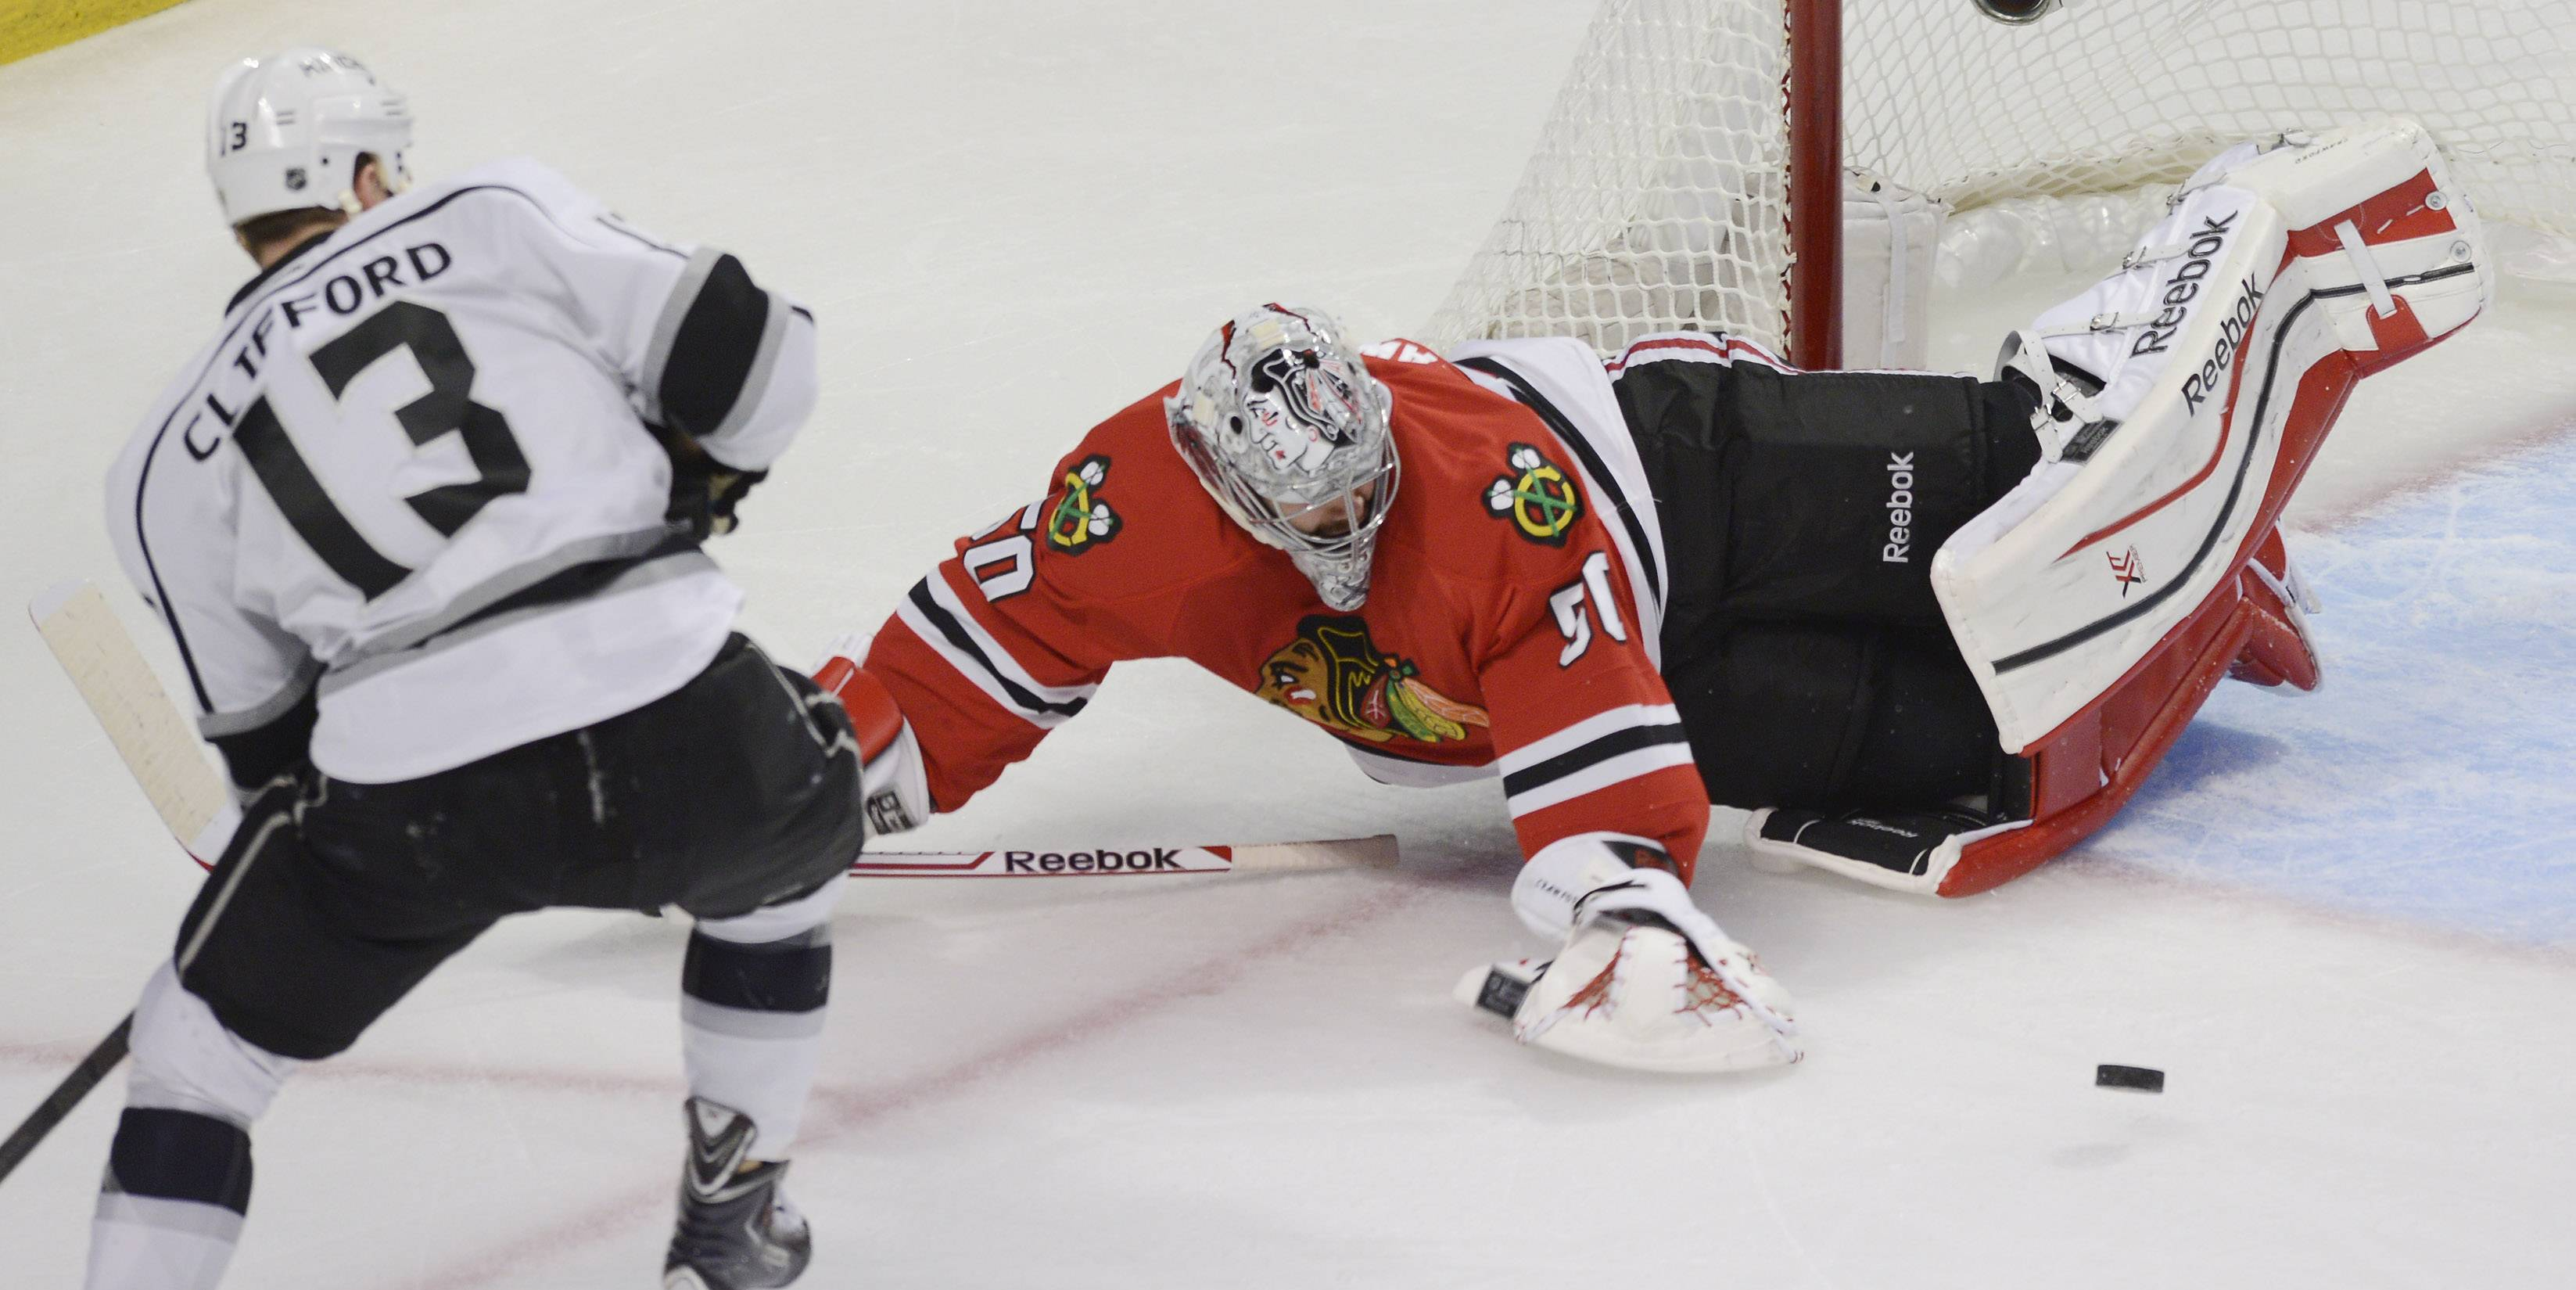 Chicago Blackhawks goalie Corey Crawford makes a save on a second-period shot by Los Angeles Kings left wing Kyle Clifford during Sunday's game at the United Center in Chicago.